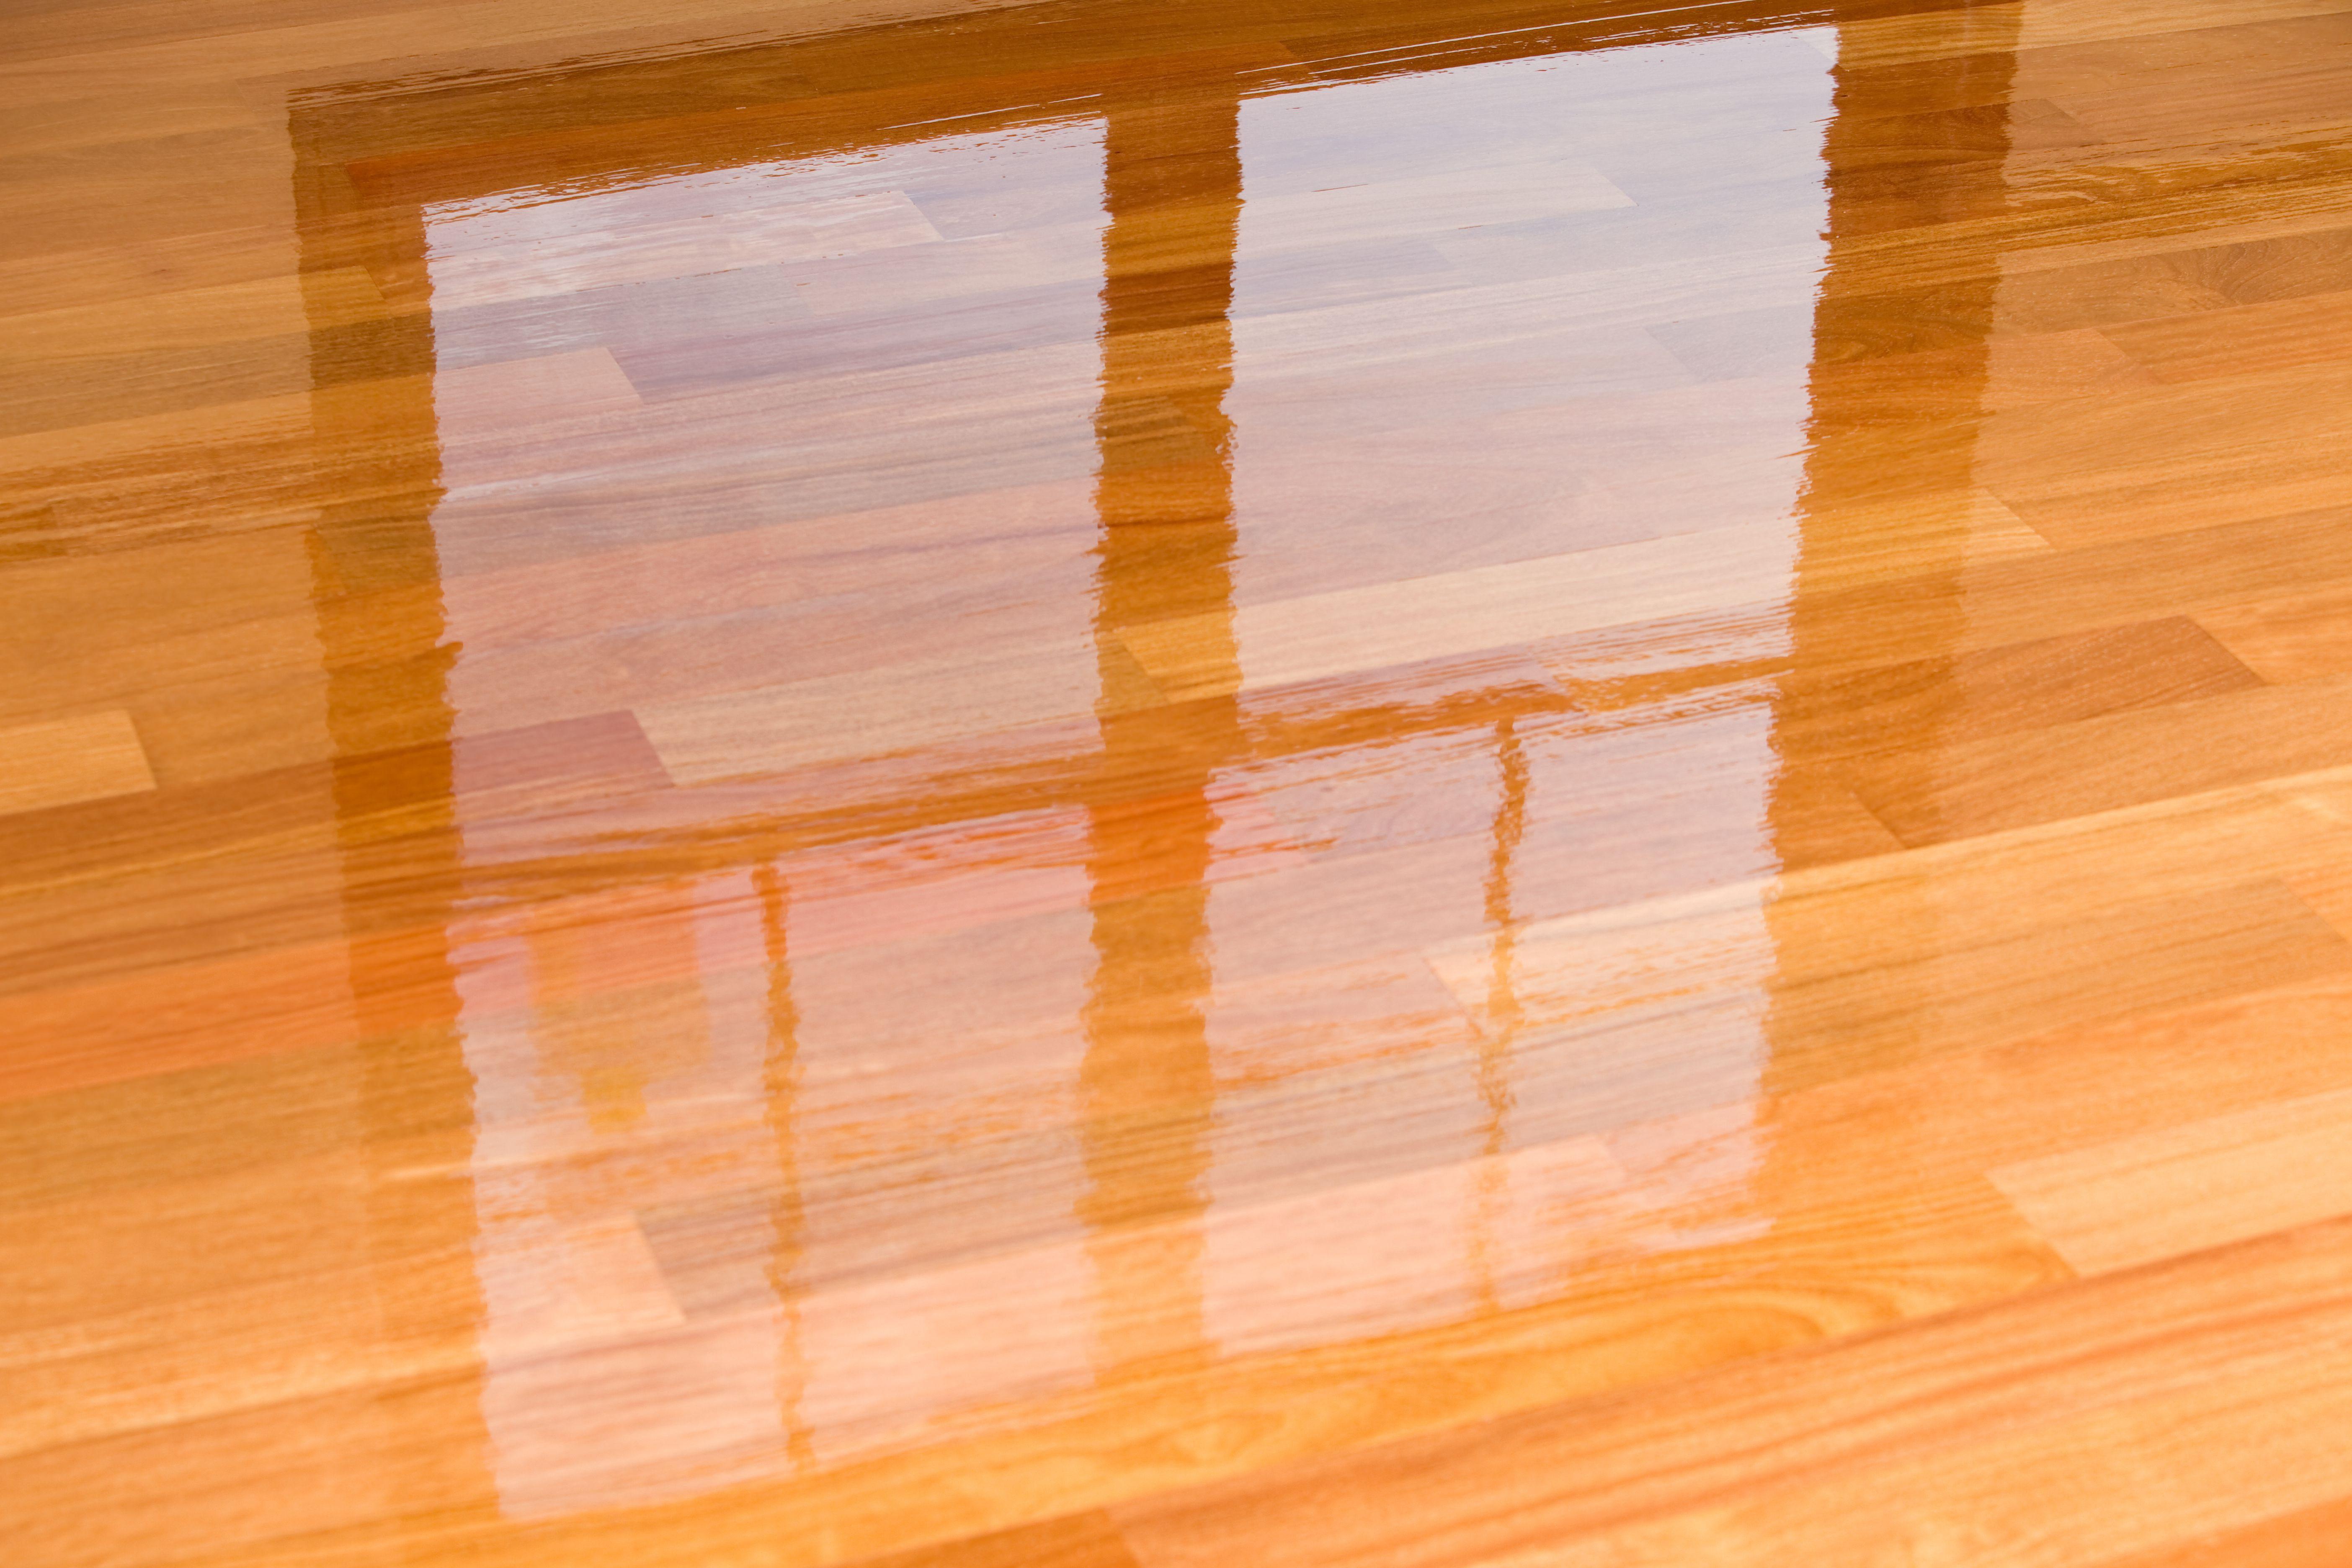 3 1 4 inch hardwood flooring of guide to laminate flooring water and damage repair regarding wet polyurethane on new hardwood floor with window reflection 183846705 582e34da3df78c6f6a403968